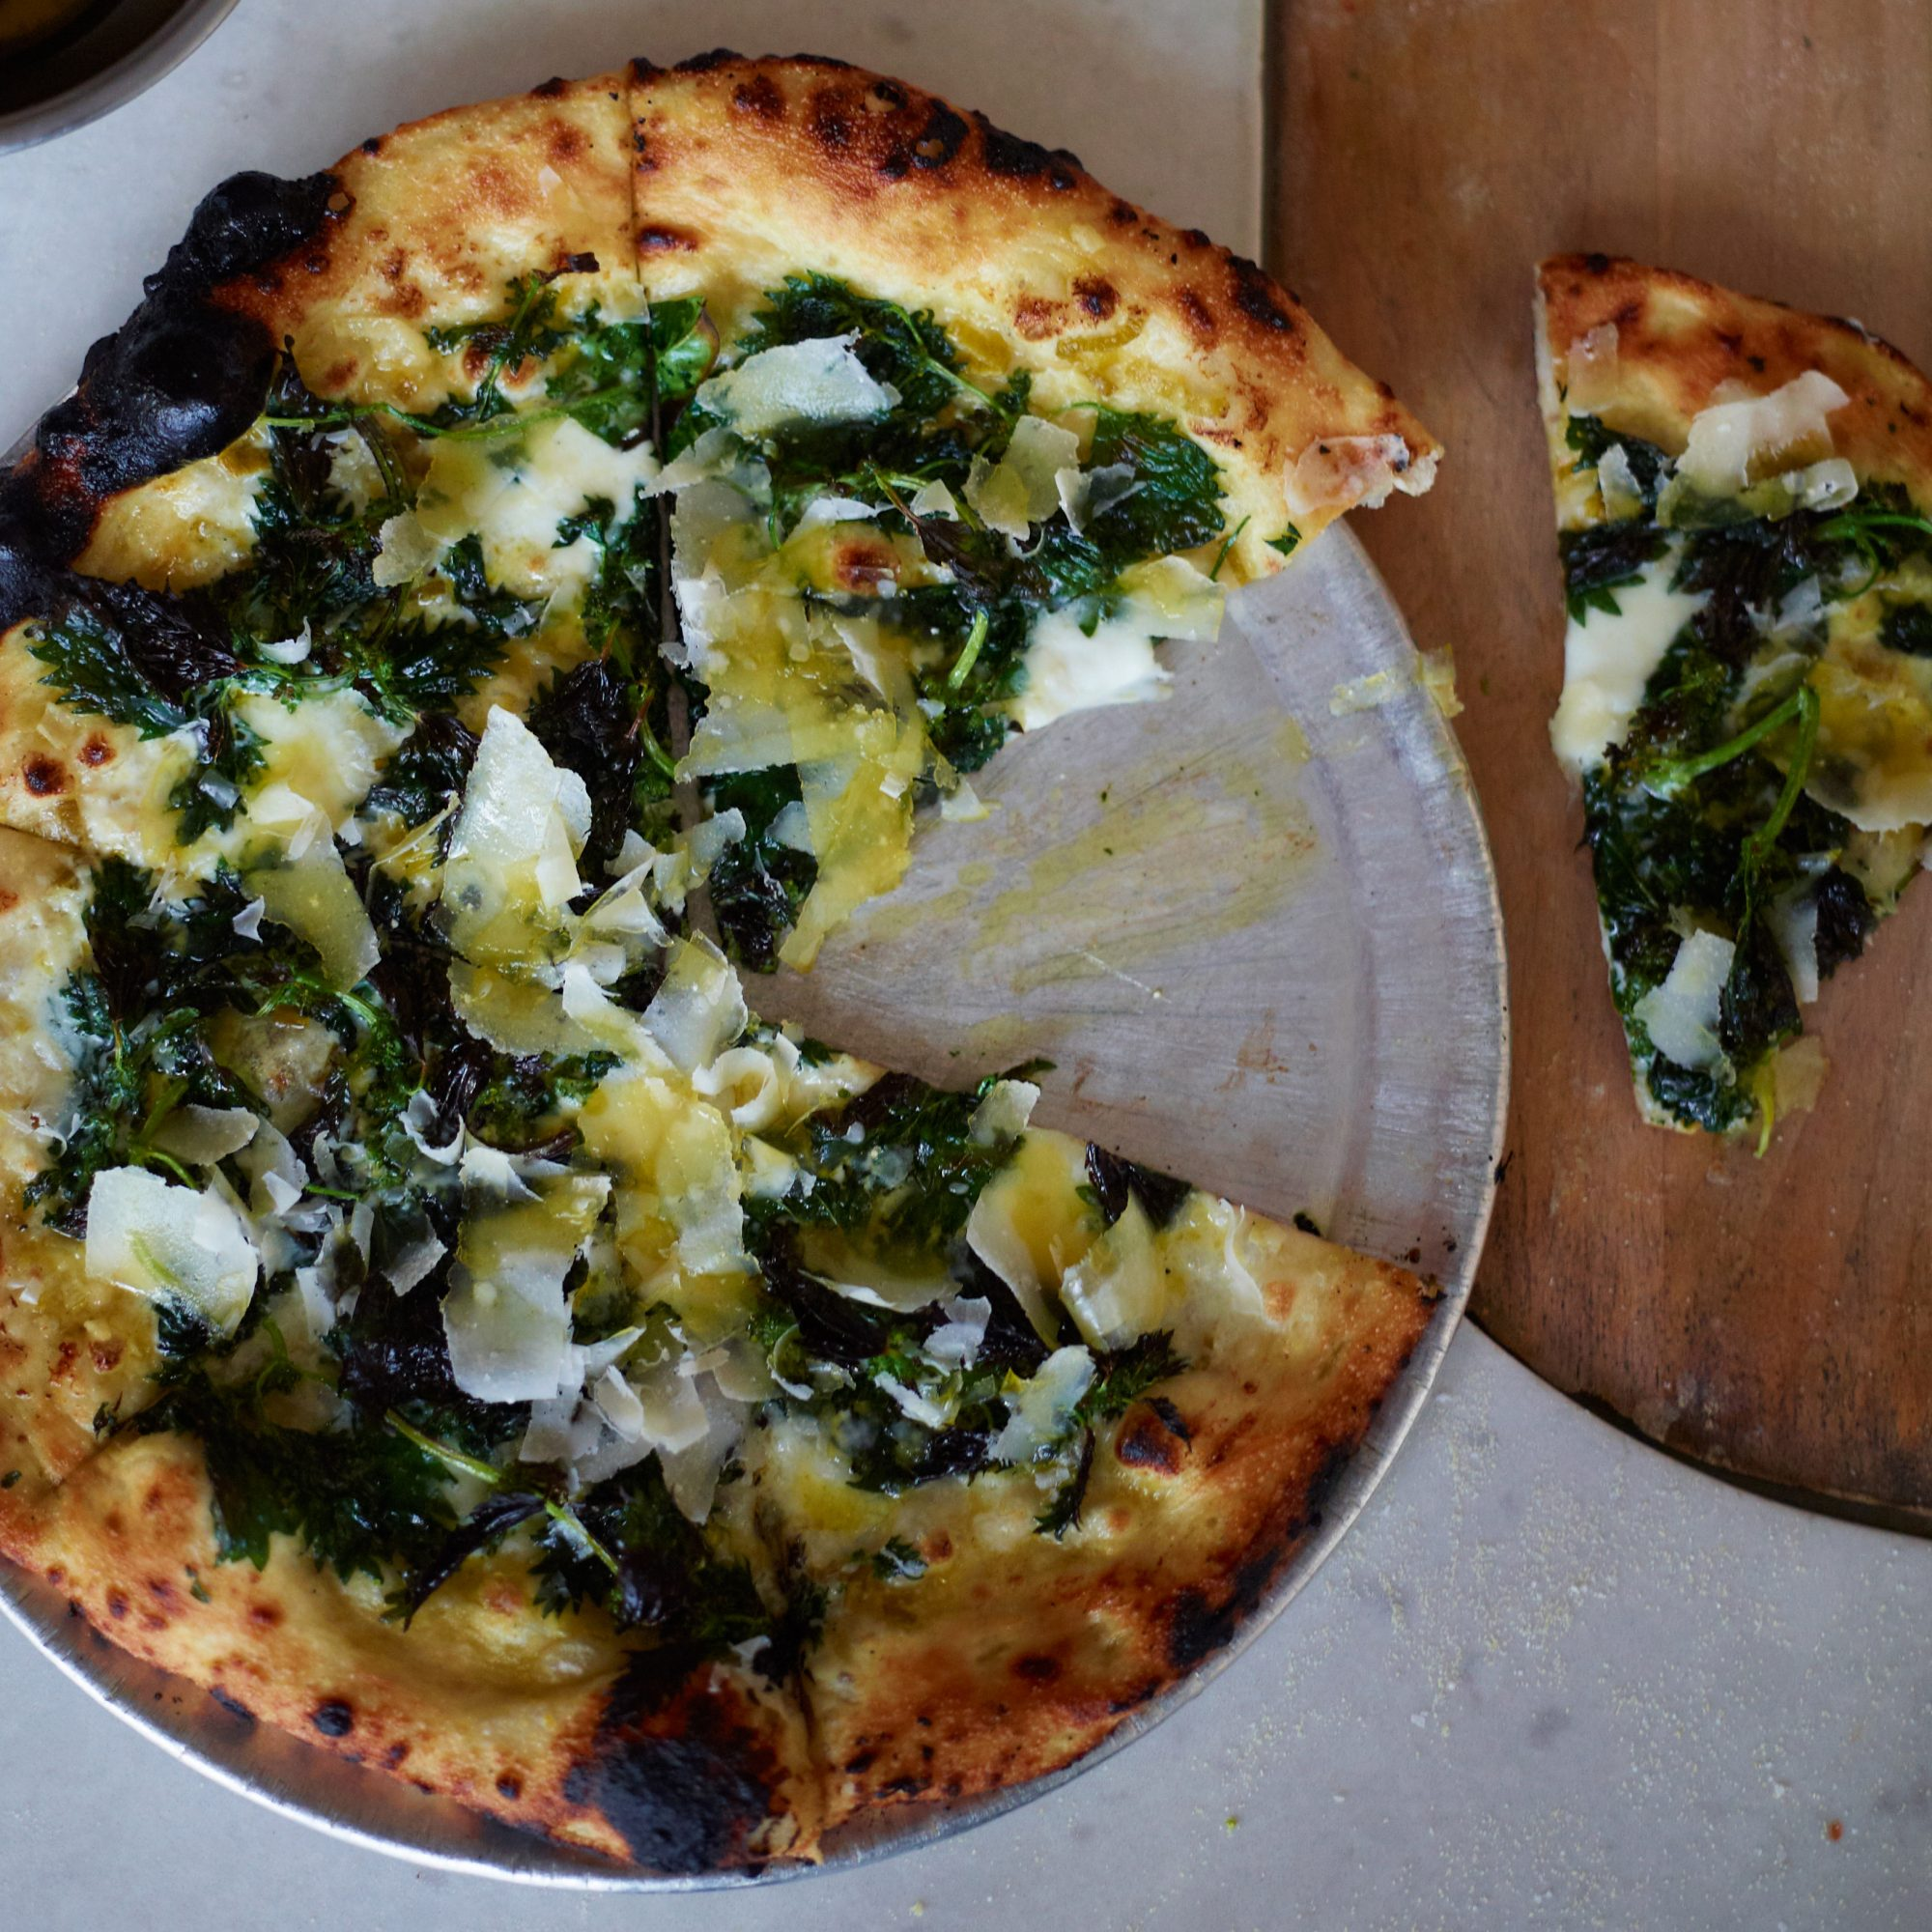 original-201204-r-pizza-with-garlic-cream-and-nettles.jpg